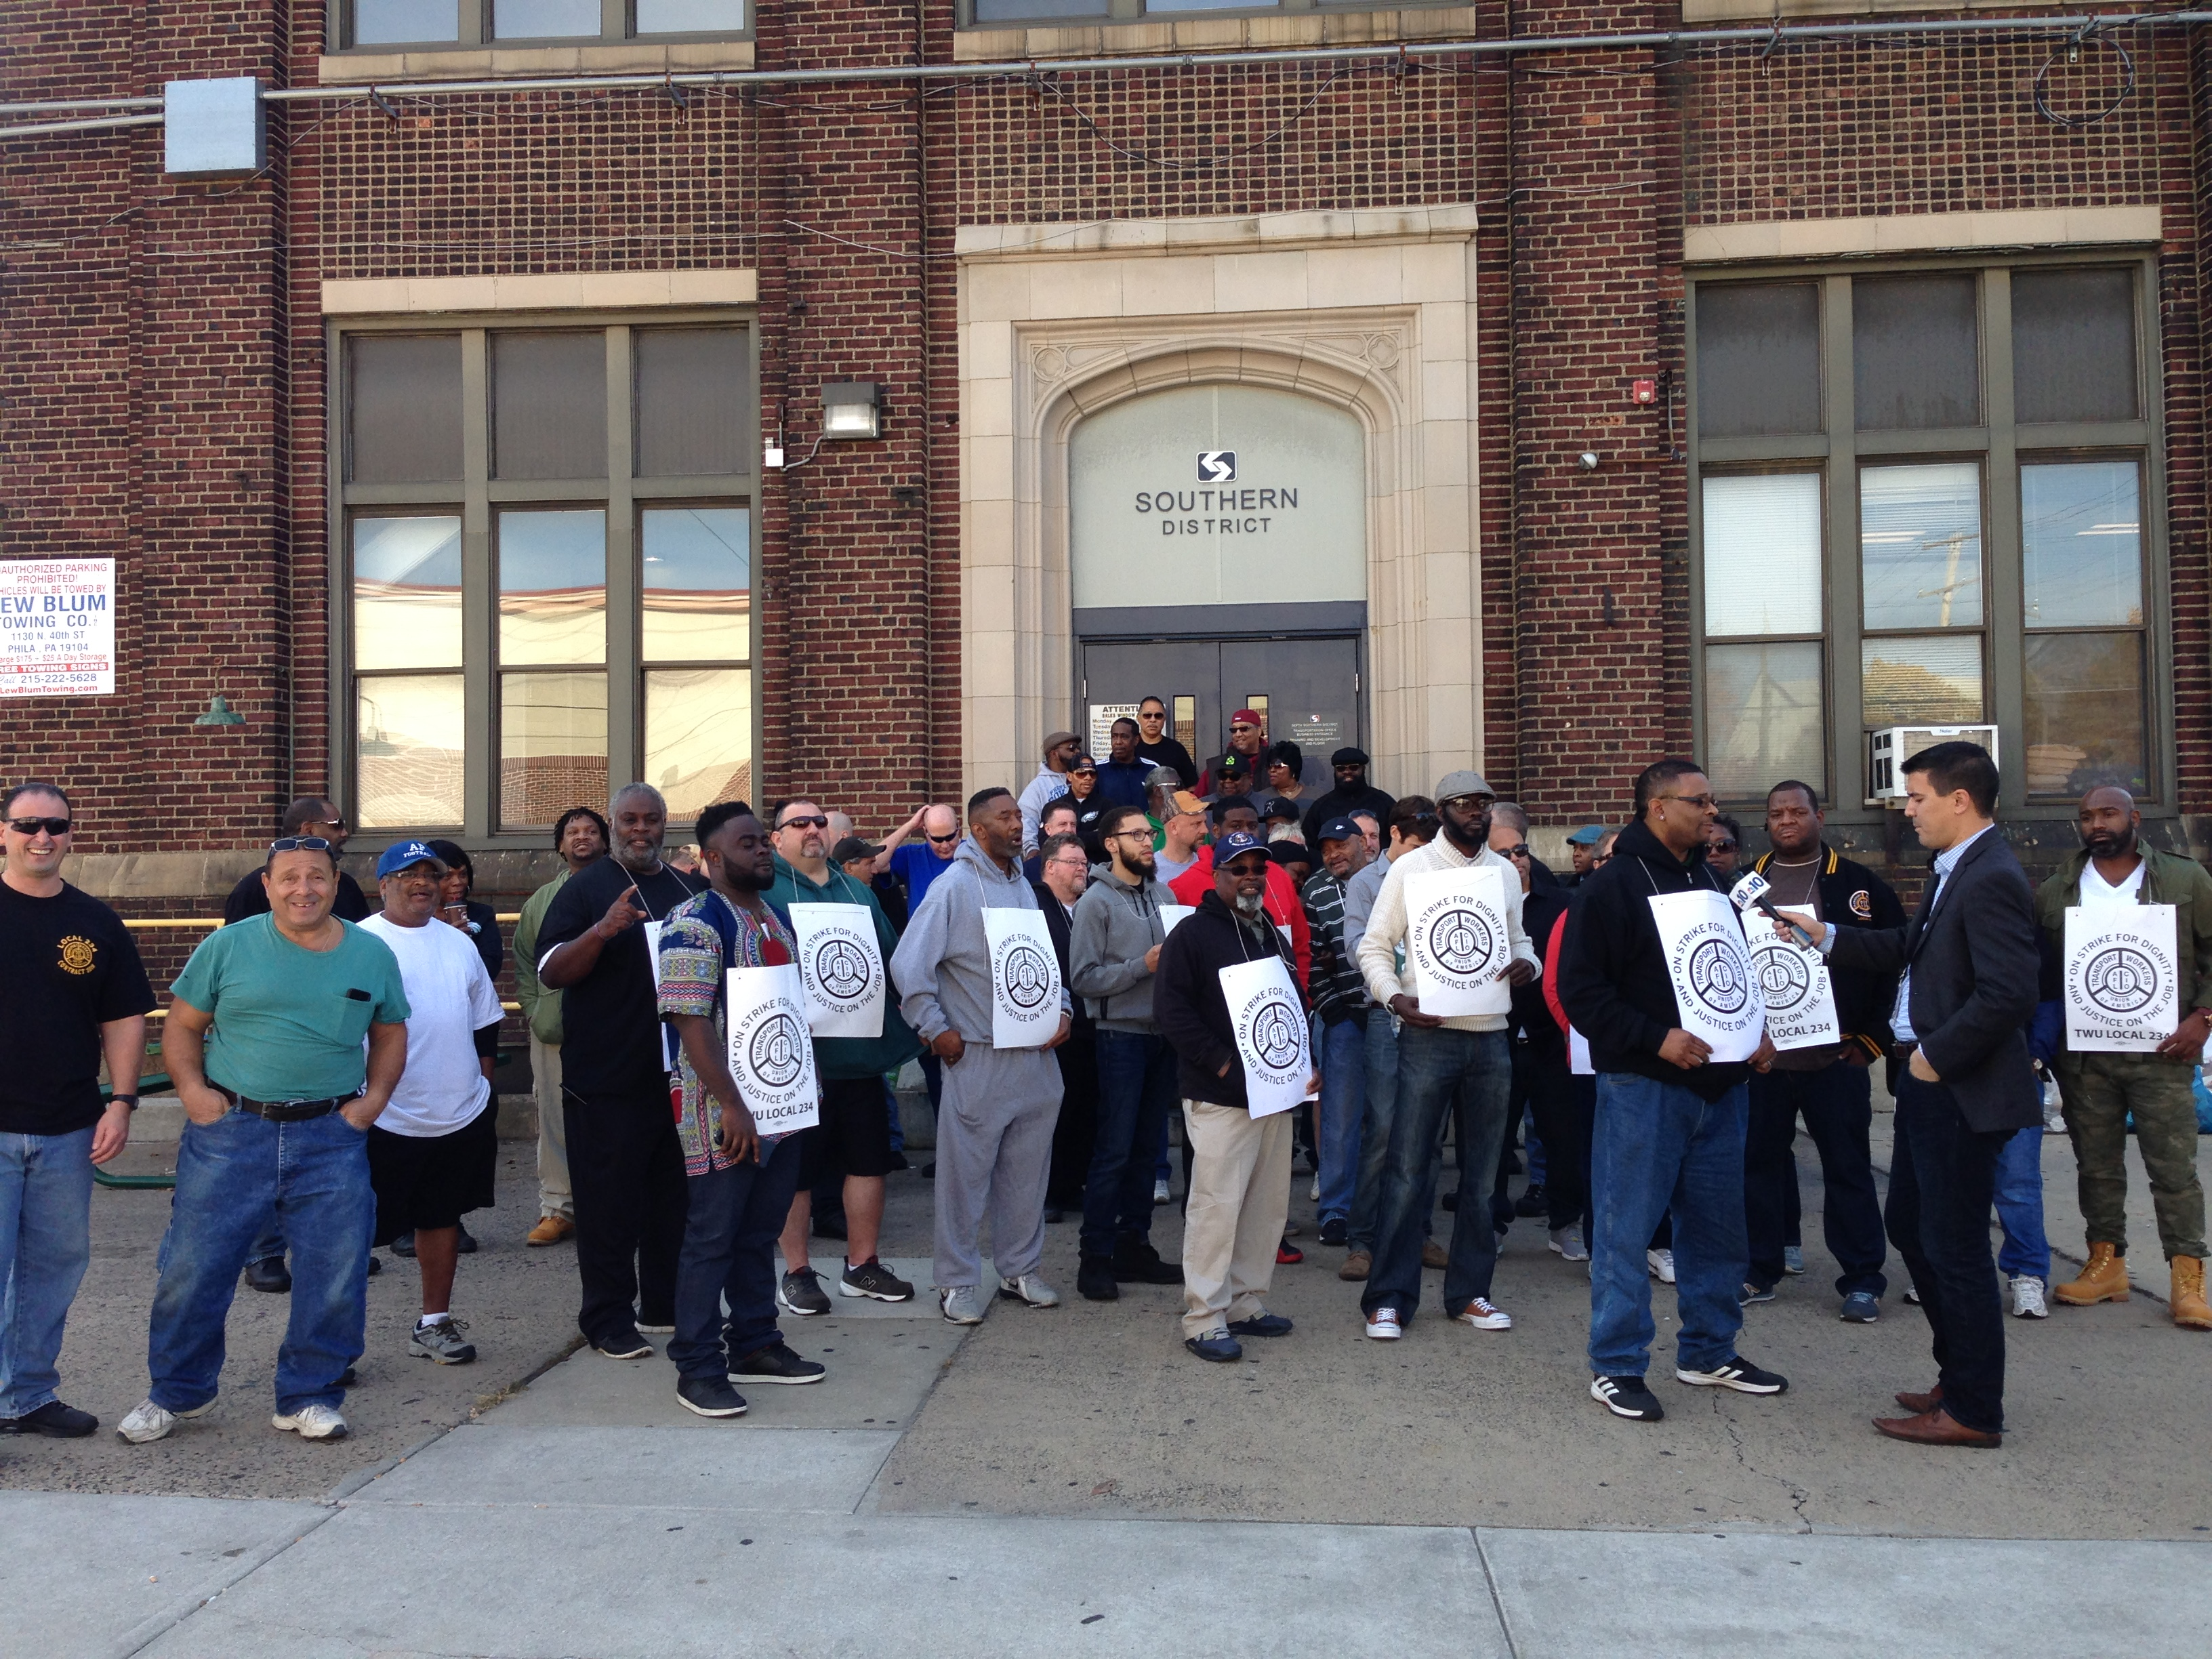 TWU Local 234 striking at SEPTA's Southern District, Nov. 2, 2016